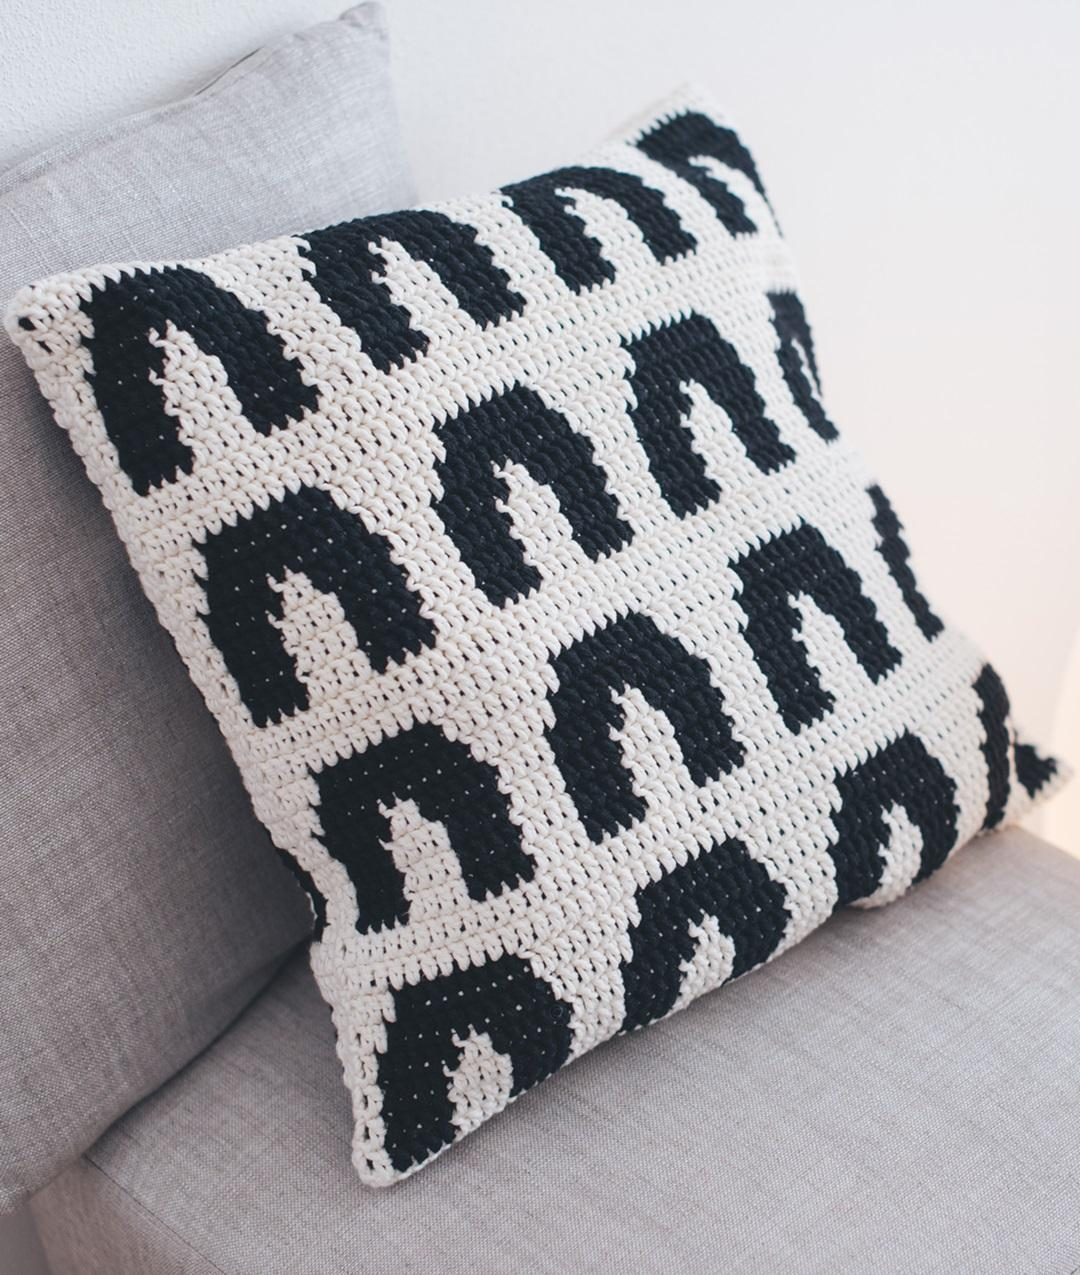 Home Decor Collection - Home Decor Collection -  - KAARI PILLOW - 1